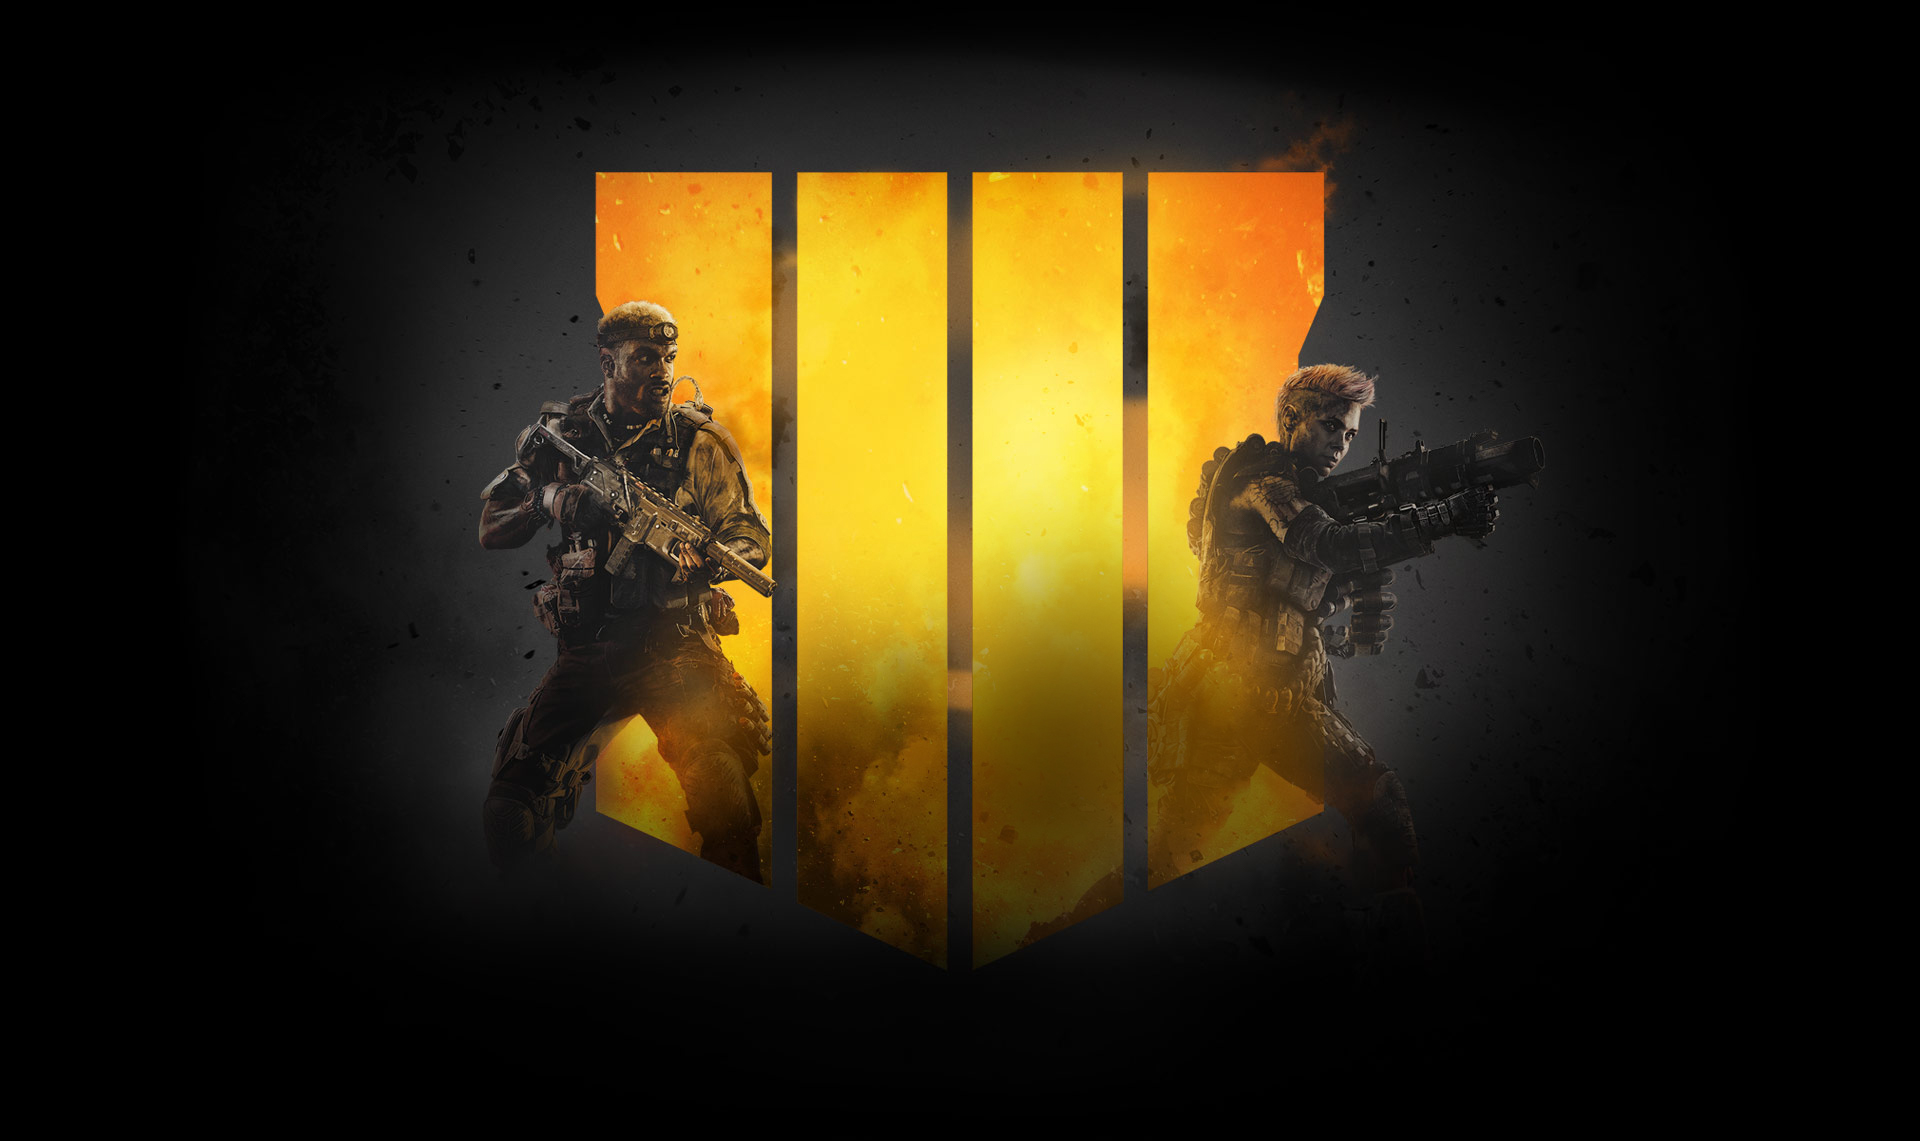 First footage of Black Ops 4 Battle Royale released - lasts 13 seconds